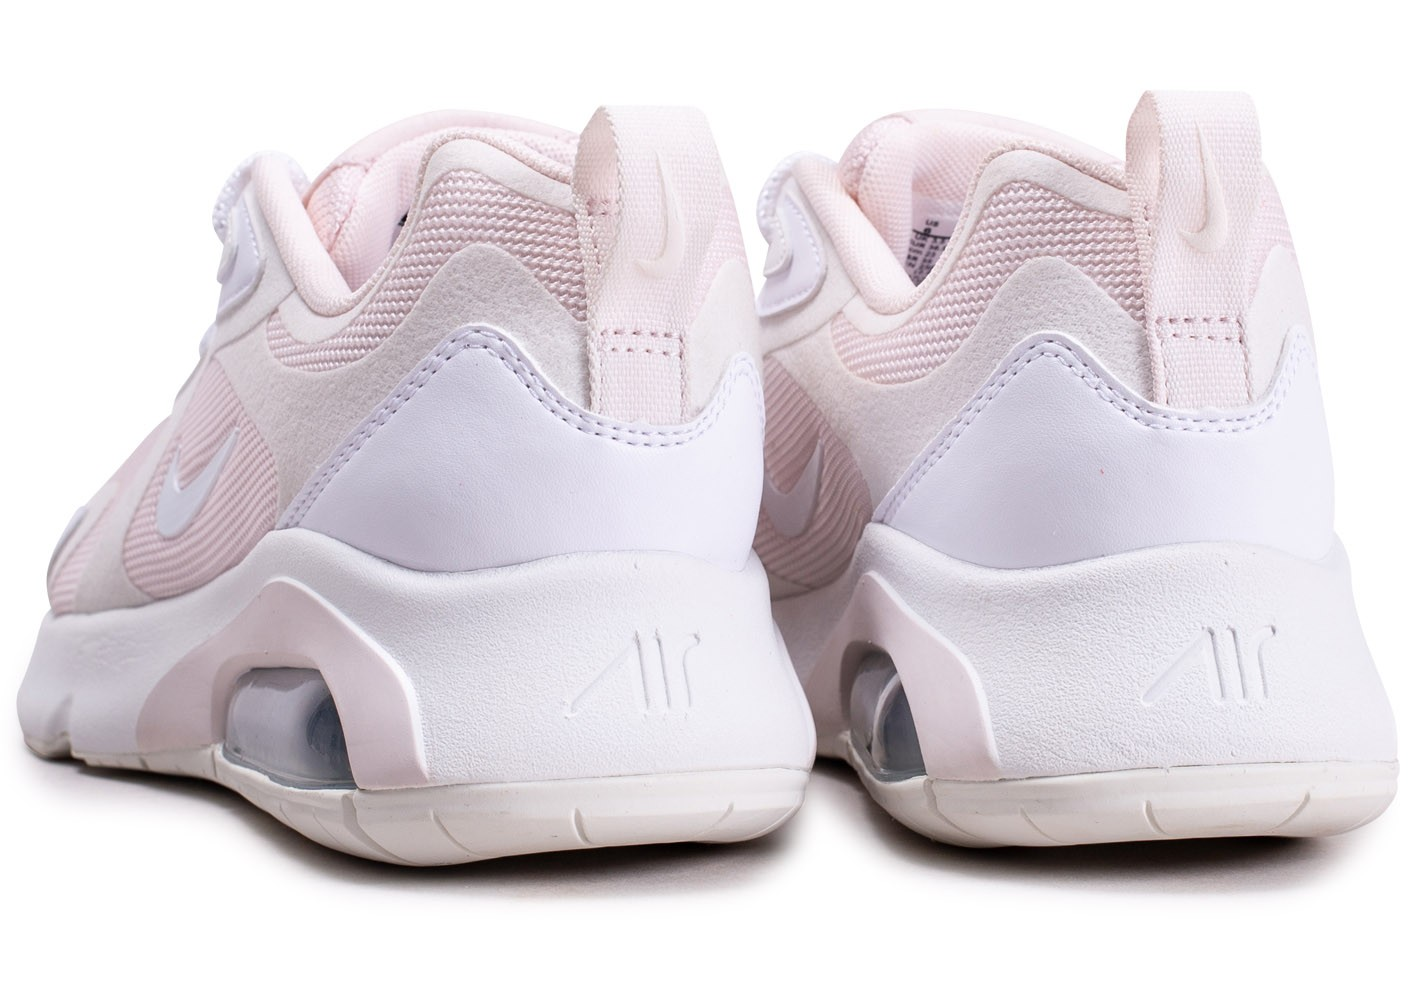 Nike Air Max 200 blanche et rose femme Chaussures Prix